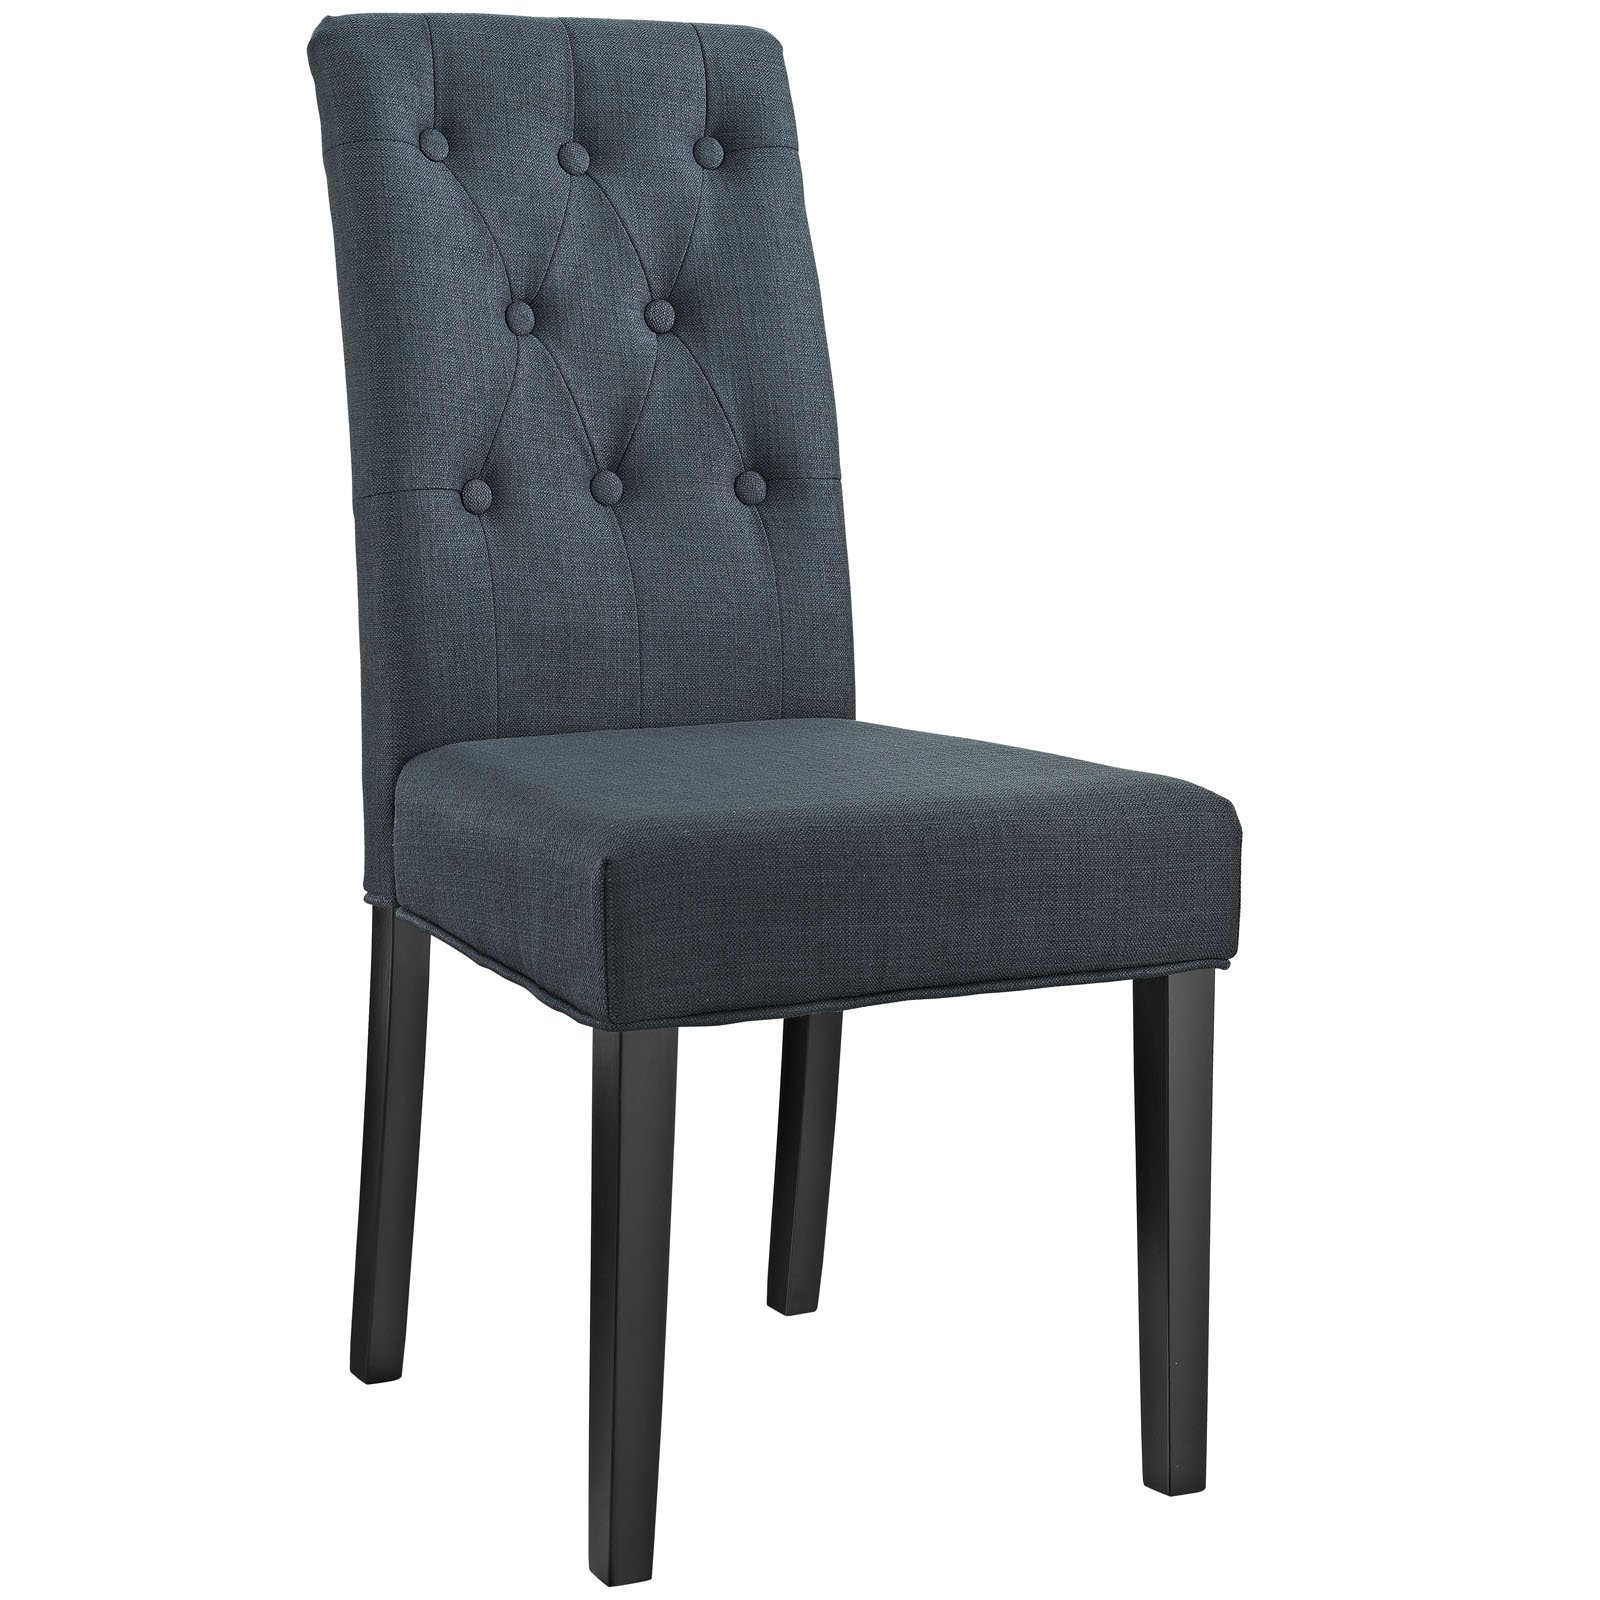 Modway Confer Dining Fabric Side Chair, Gray by Modway (Image #1)